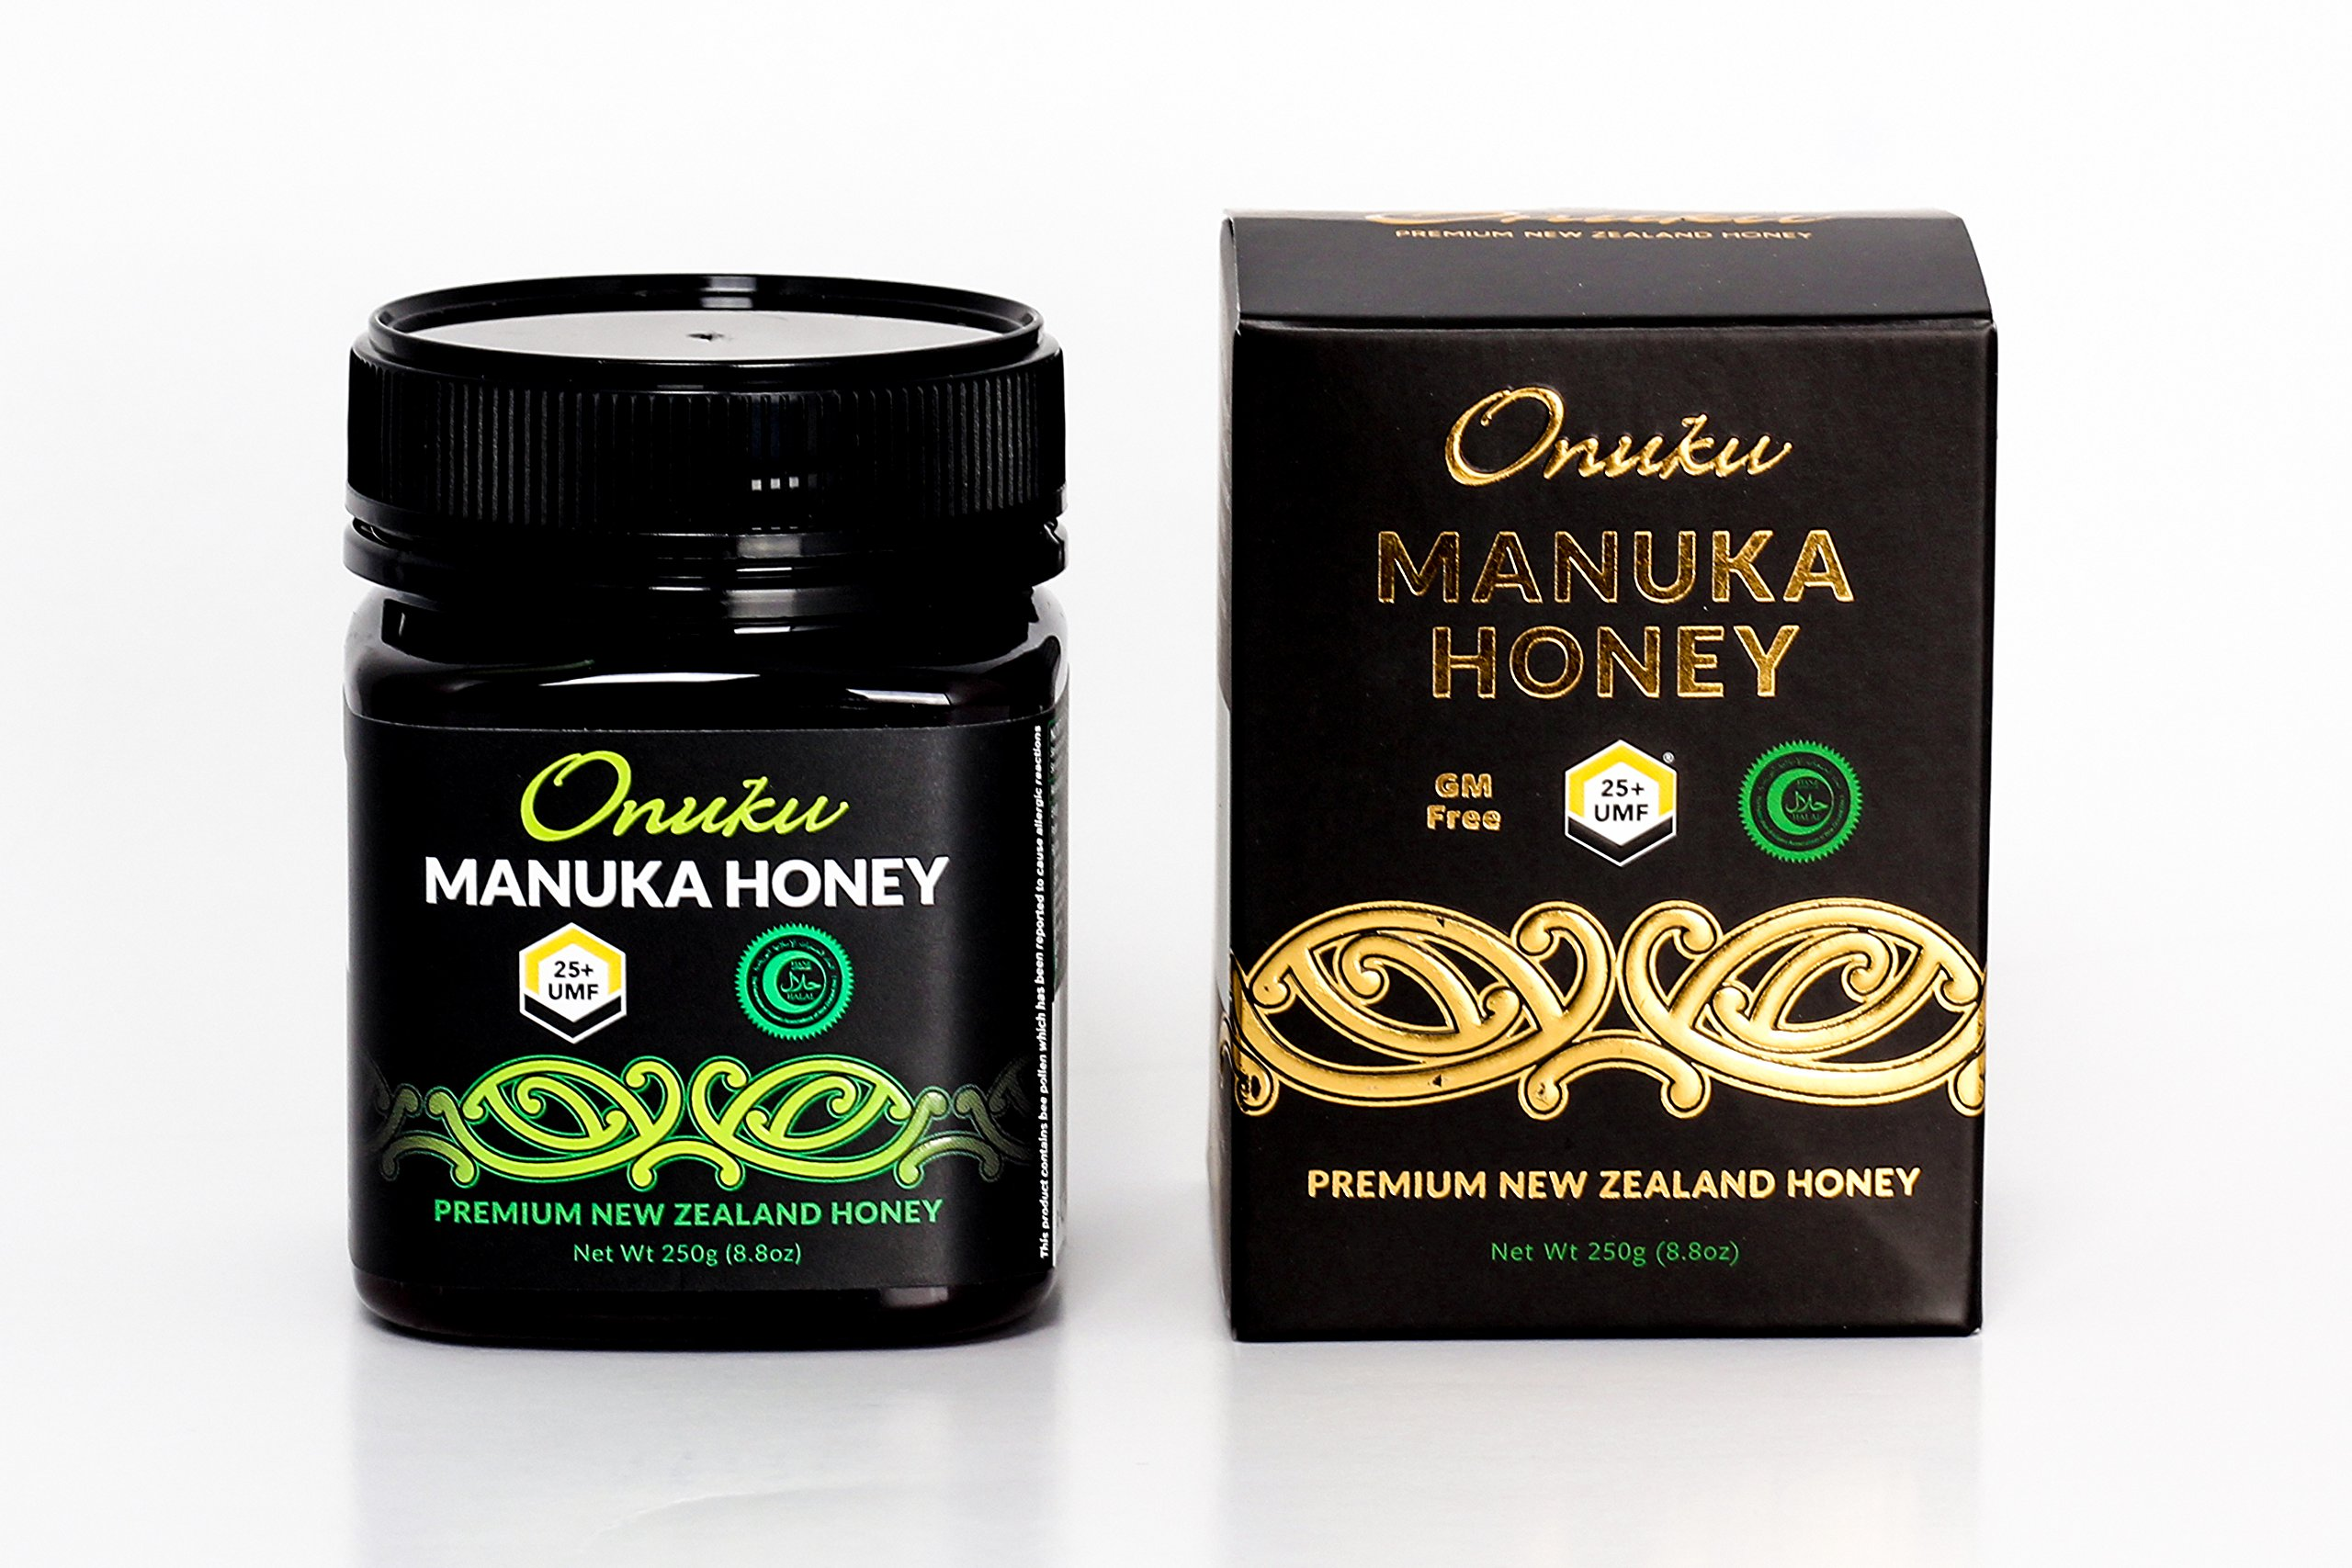 Onuku Certified Manuka Honey UMF 25+ Authentic Pure New Zealand Manuka – 250g Jar – Tasty and Flavorful Honey – Proven Health Benefits